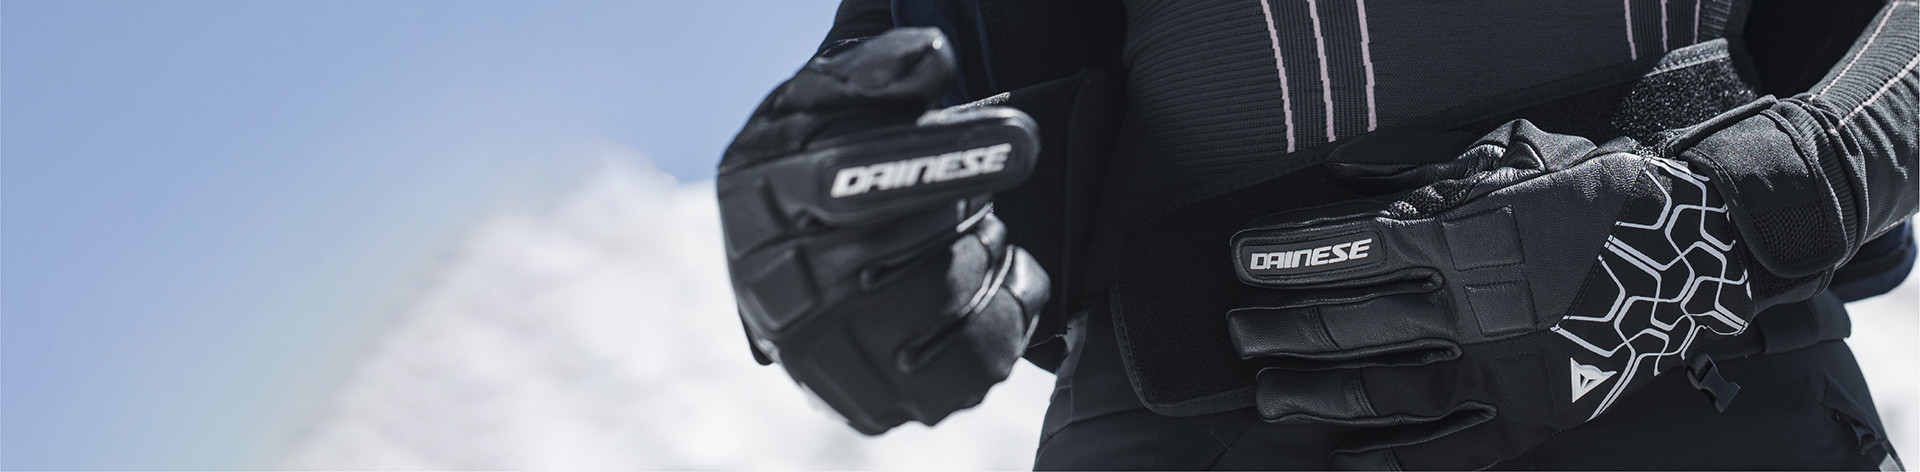 Dainese Winter Sports woman gloves